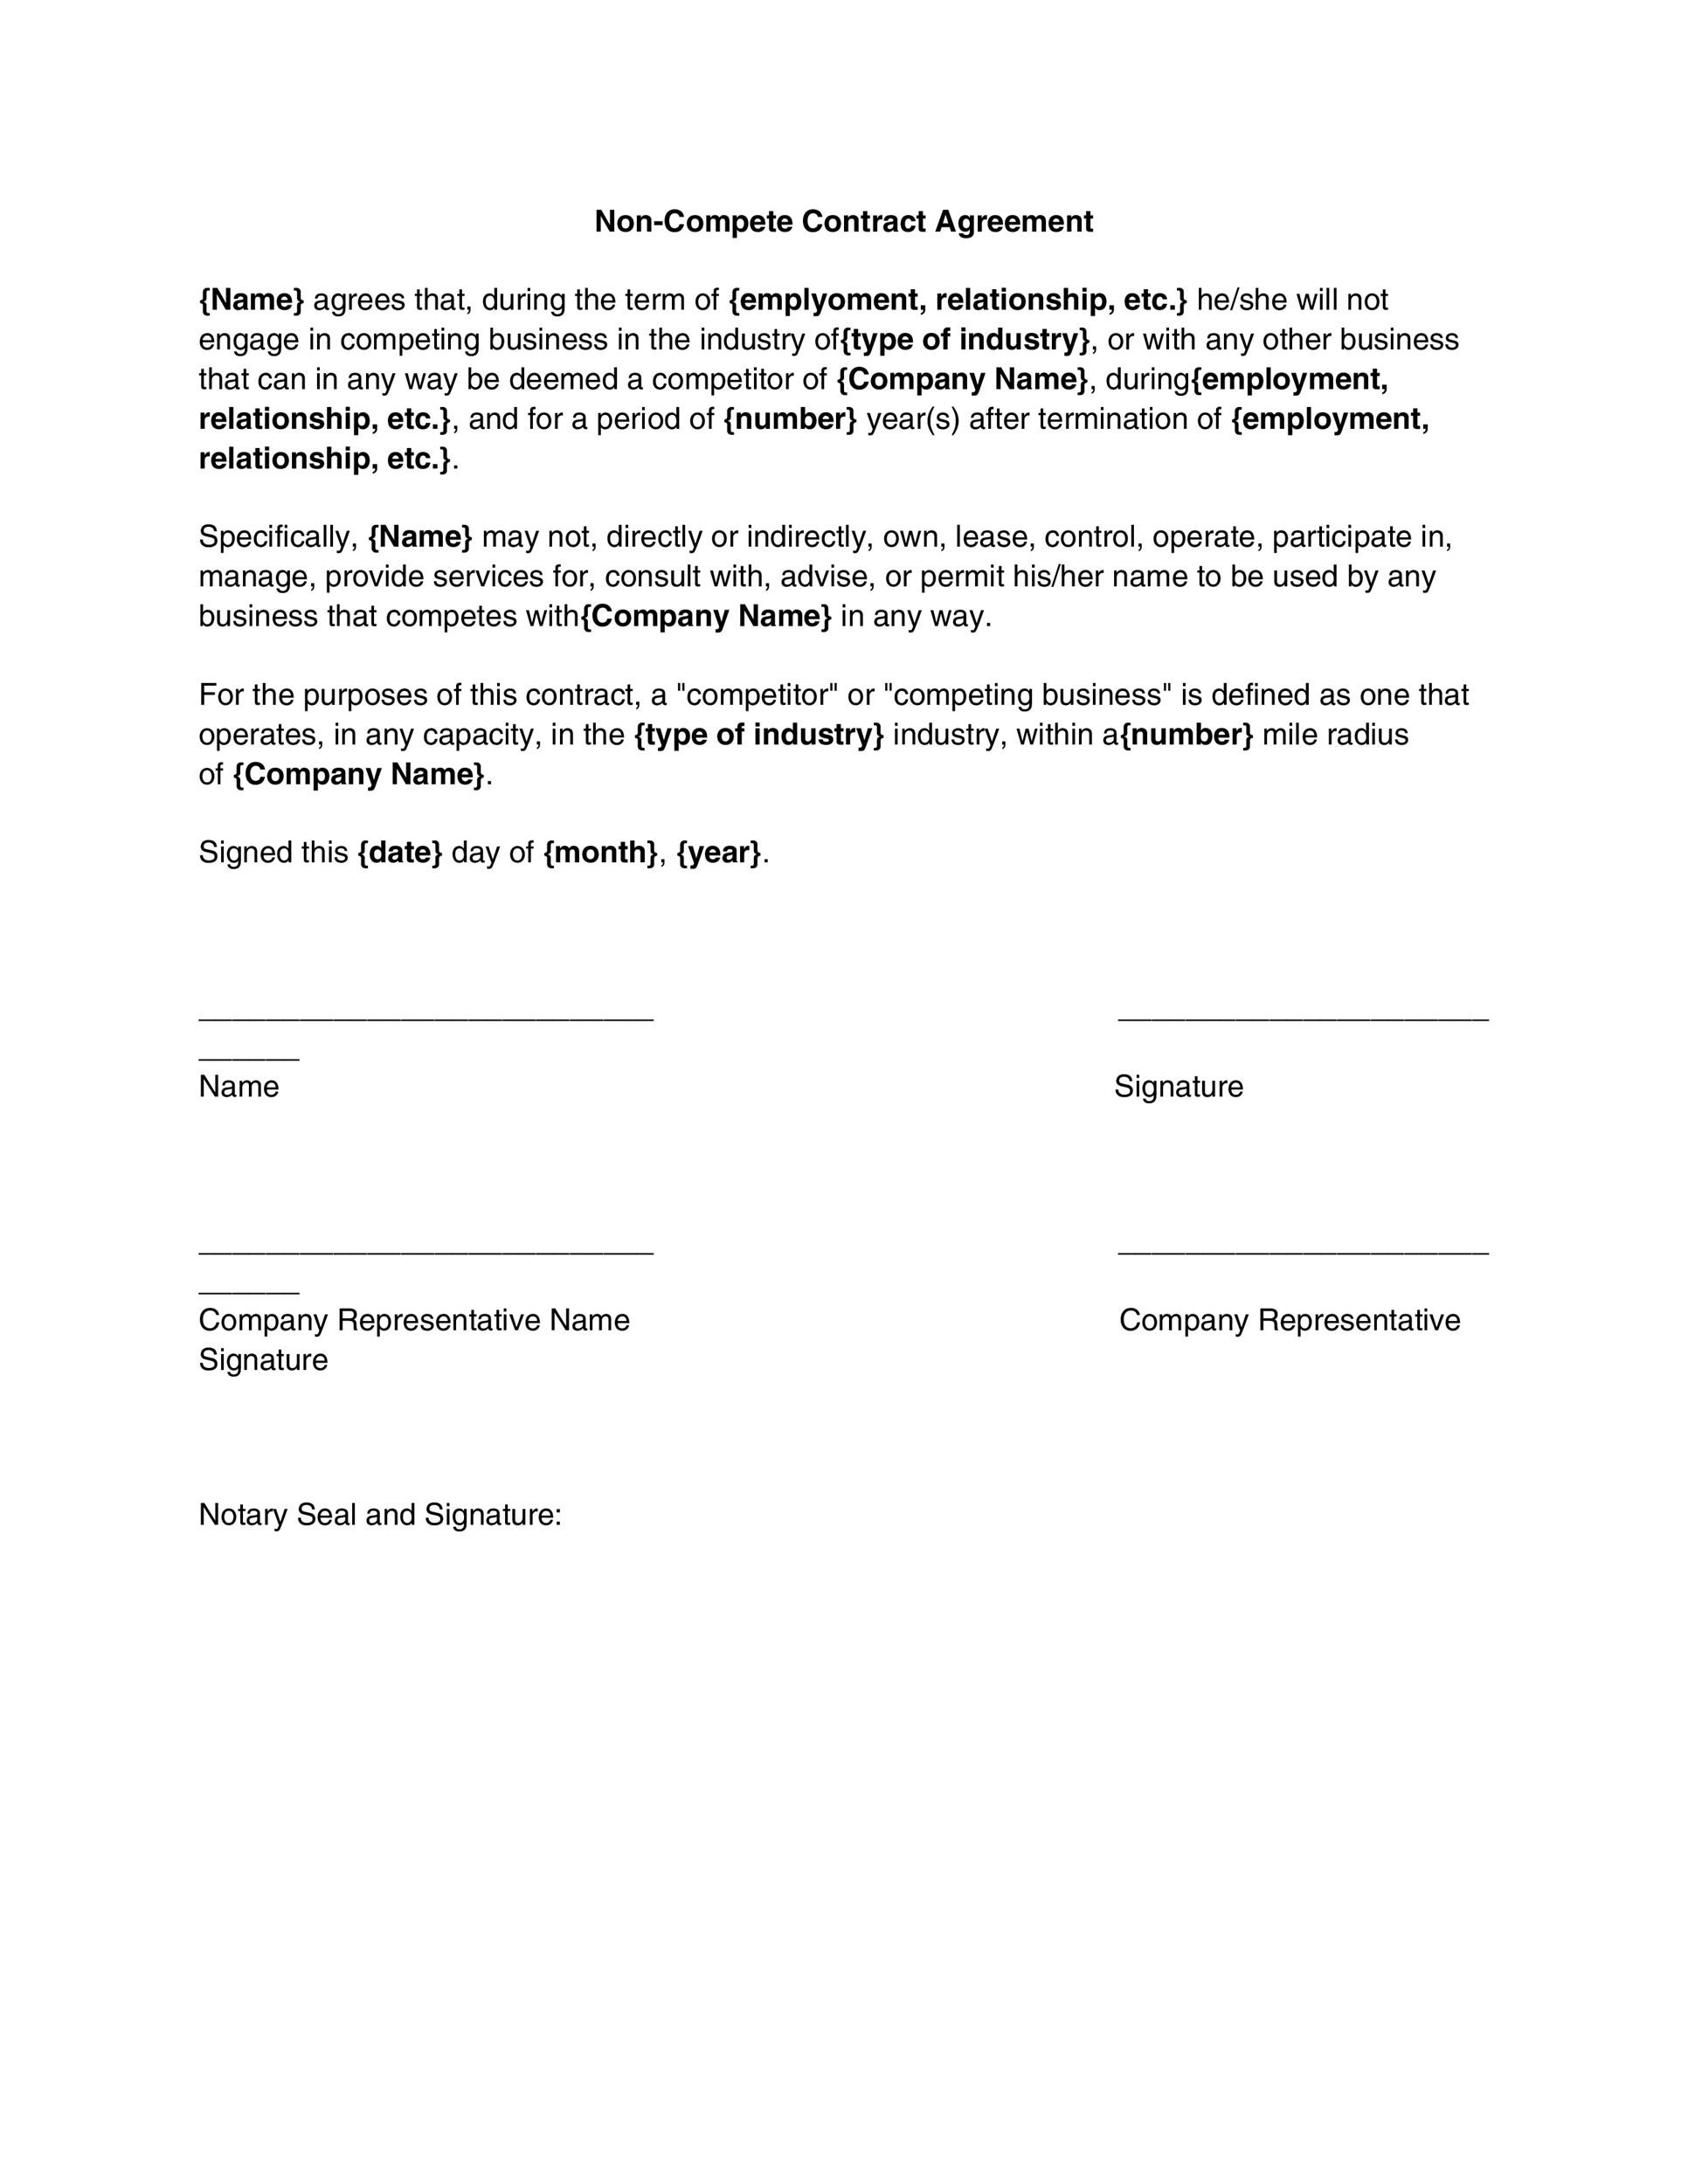 Job Contract Template Employee Agreement Is A Contract Between An